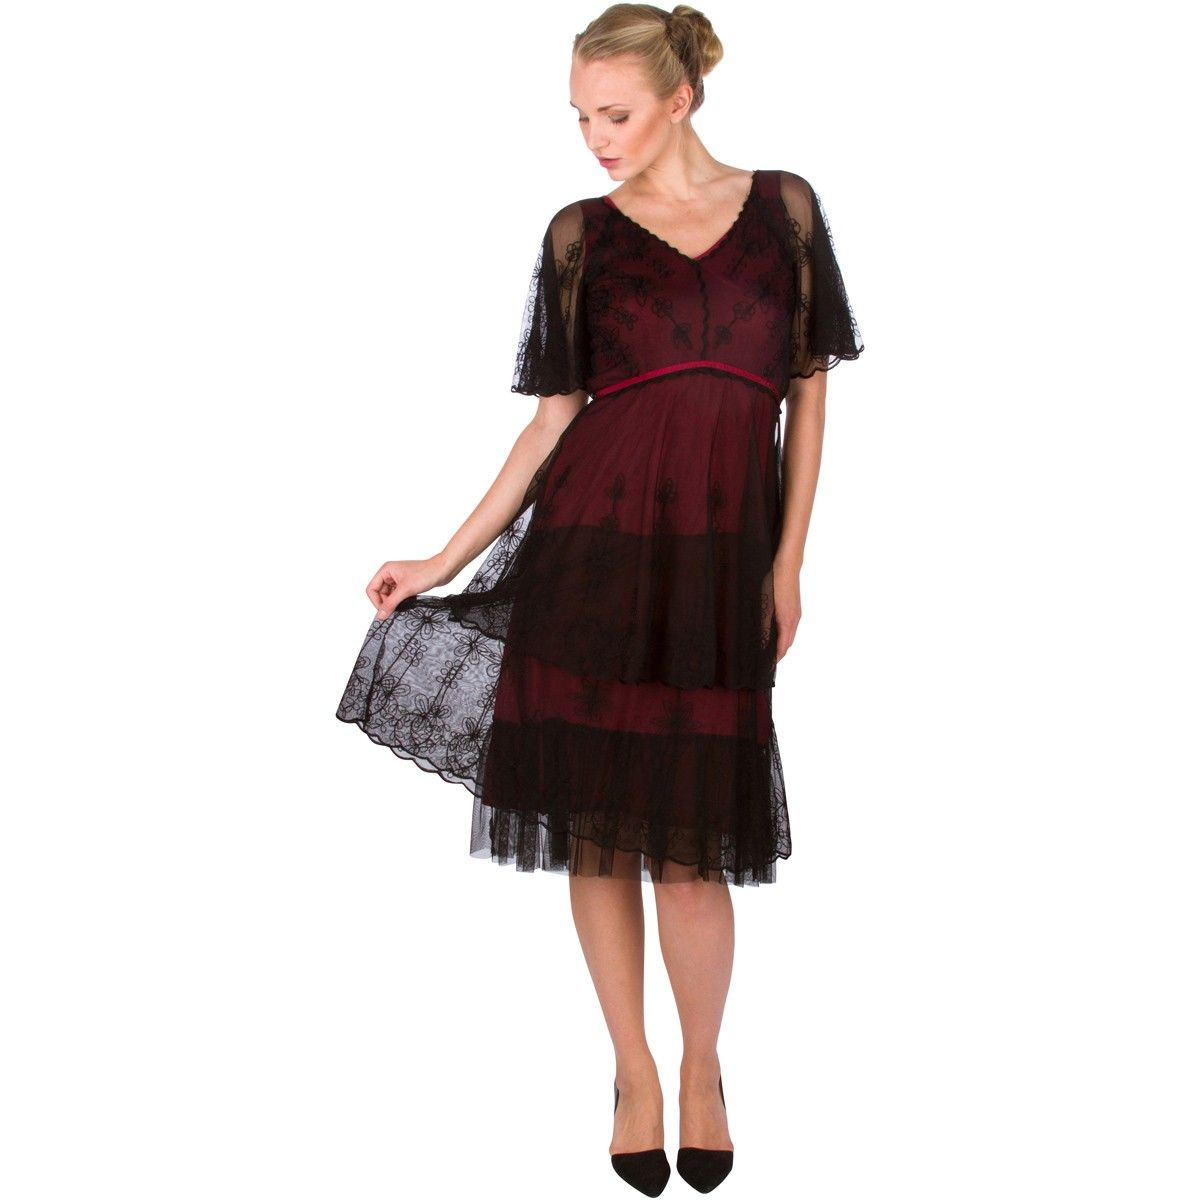 romantic vintage style short dress in wine nataya fashion